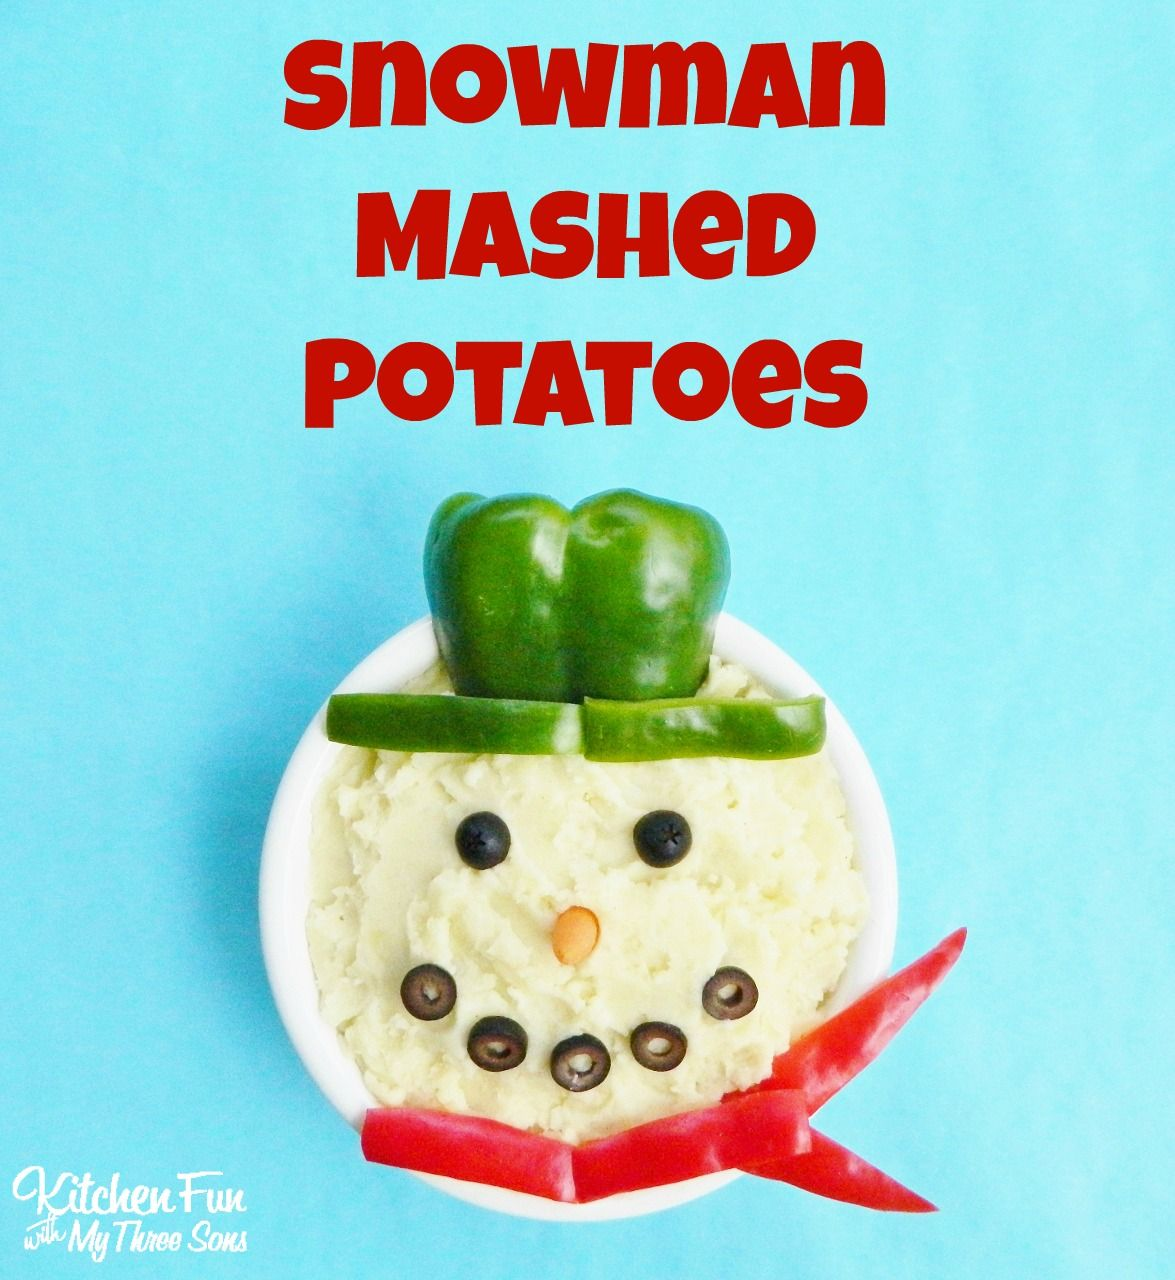 Snowman Mashed Potatoes for Christmas Dinner from KitchenFunWithMy3Sons.com